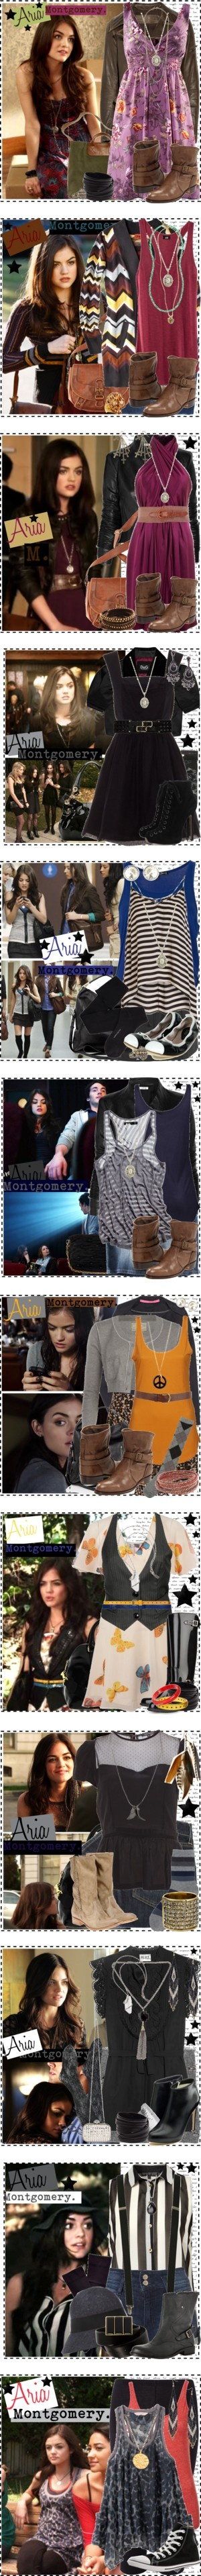 """Aria Montgomery [Pretty Little Liars]."" by silver-screen-style ❤ liked on Polyvore"